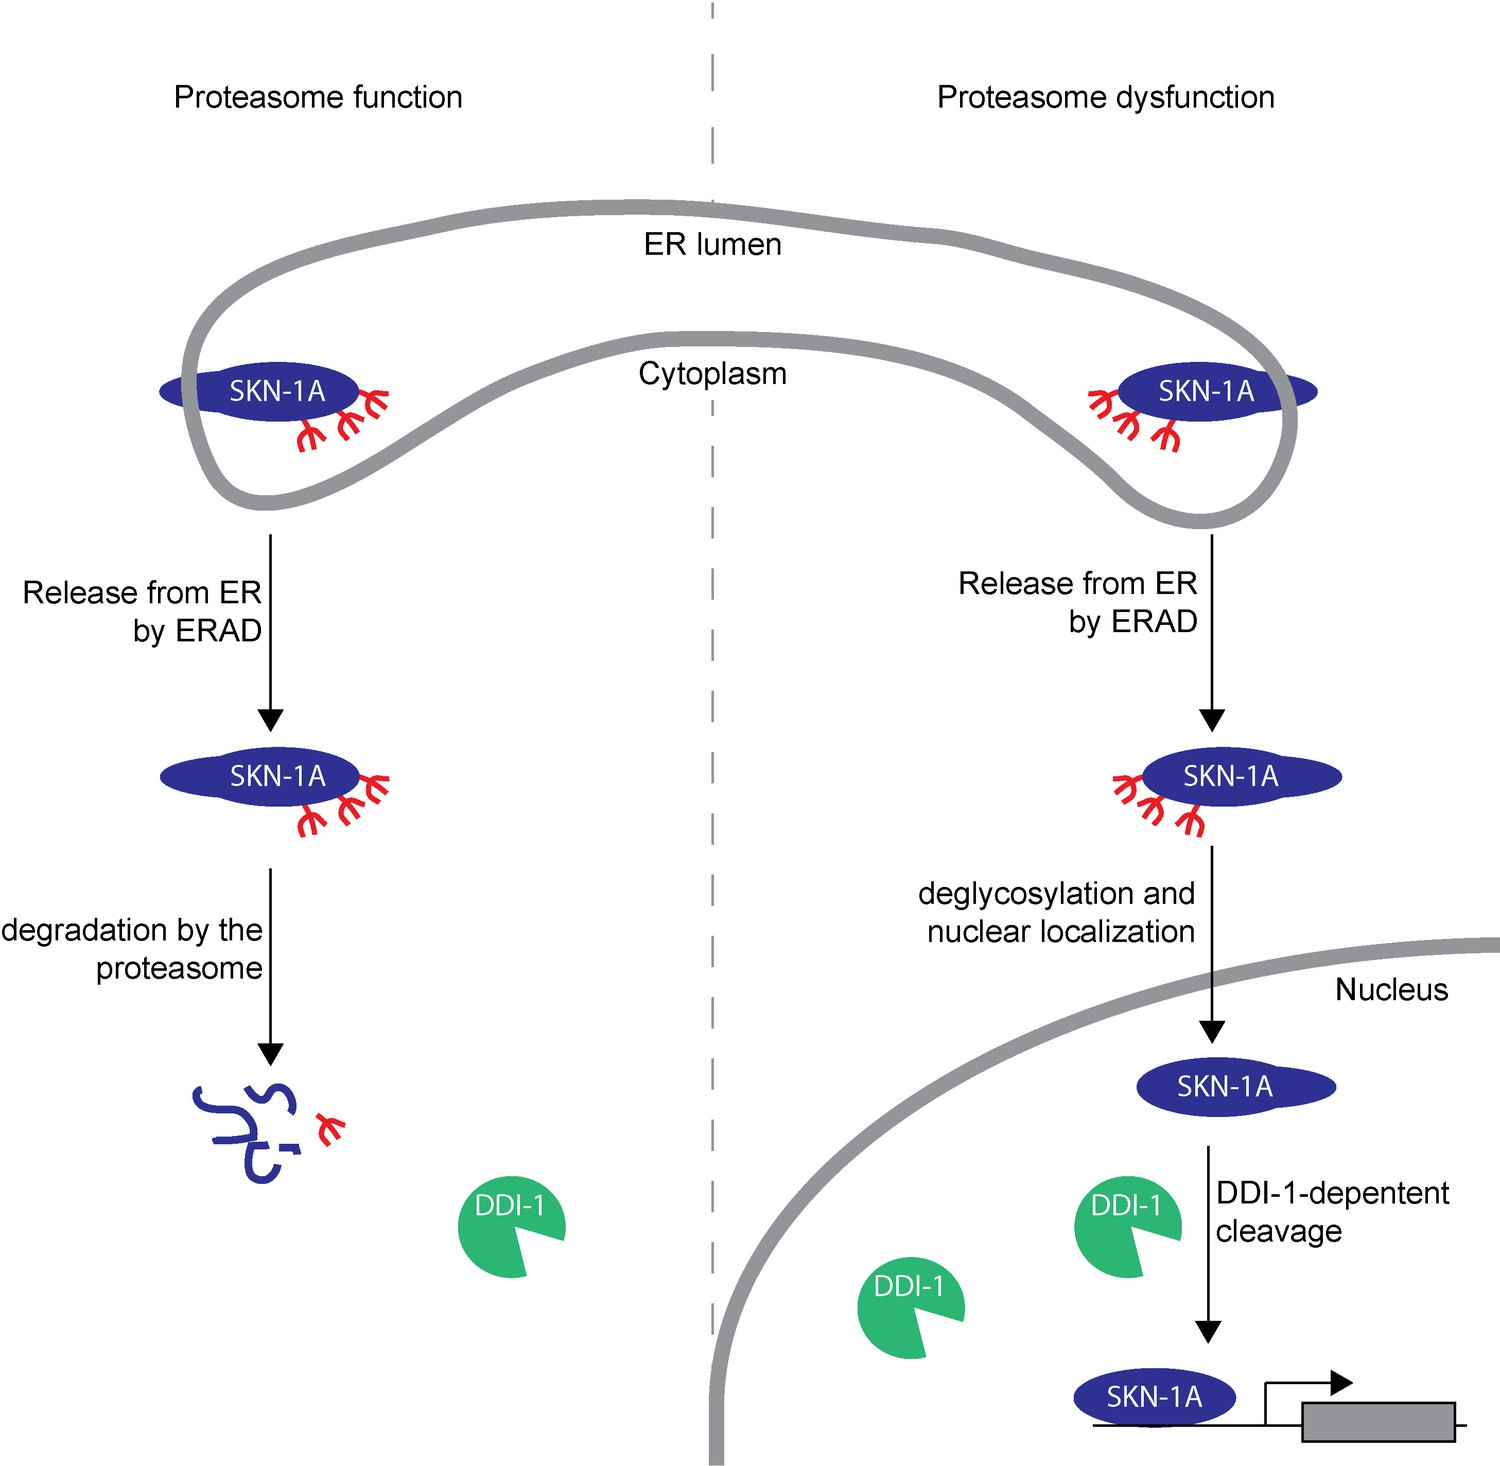 Proteasome dysfunction triggers activation of SKN-1A/Nrf1 by